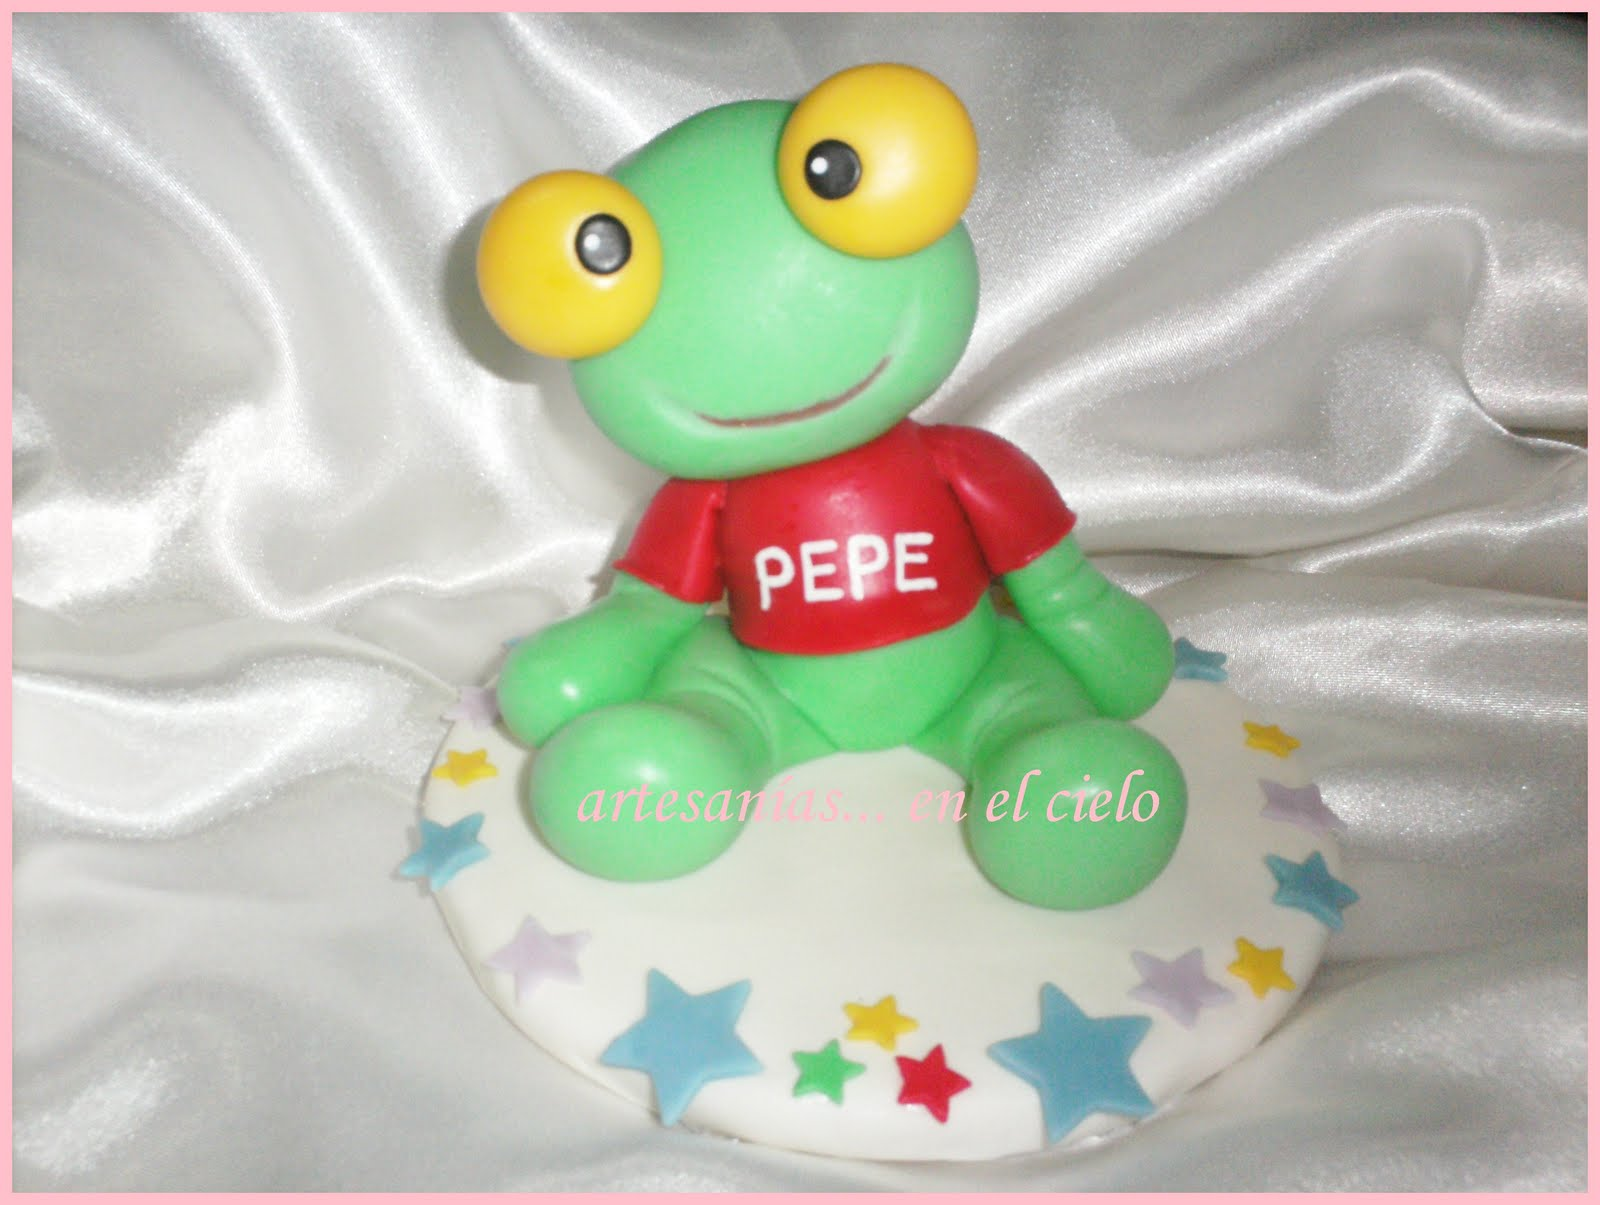 sapo pepe 5 - photo #12